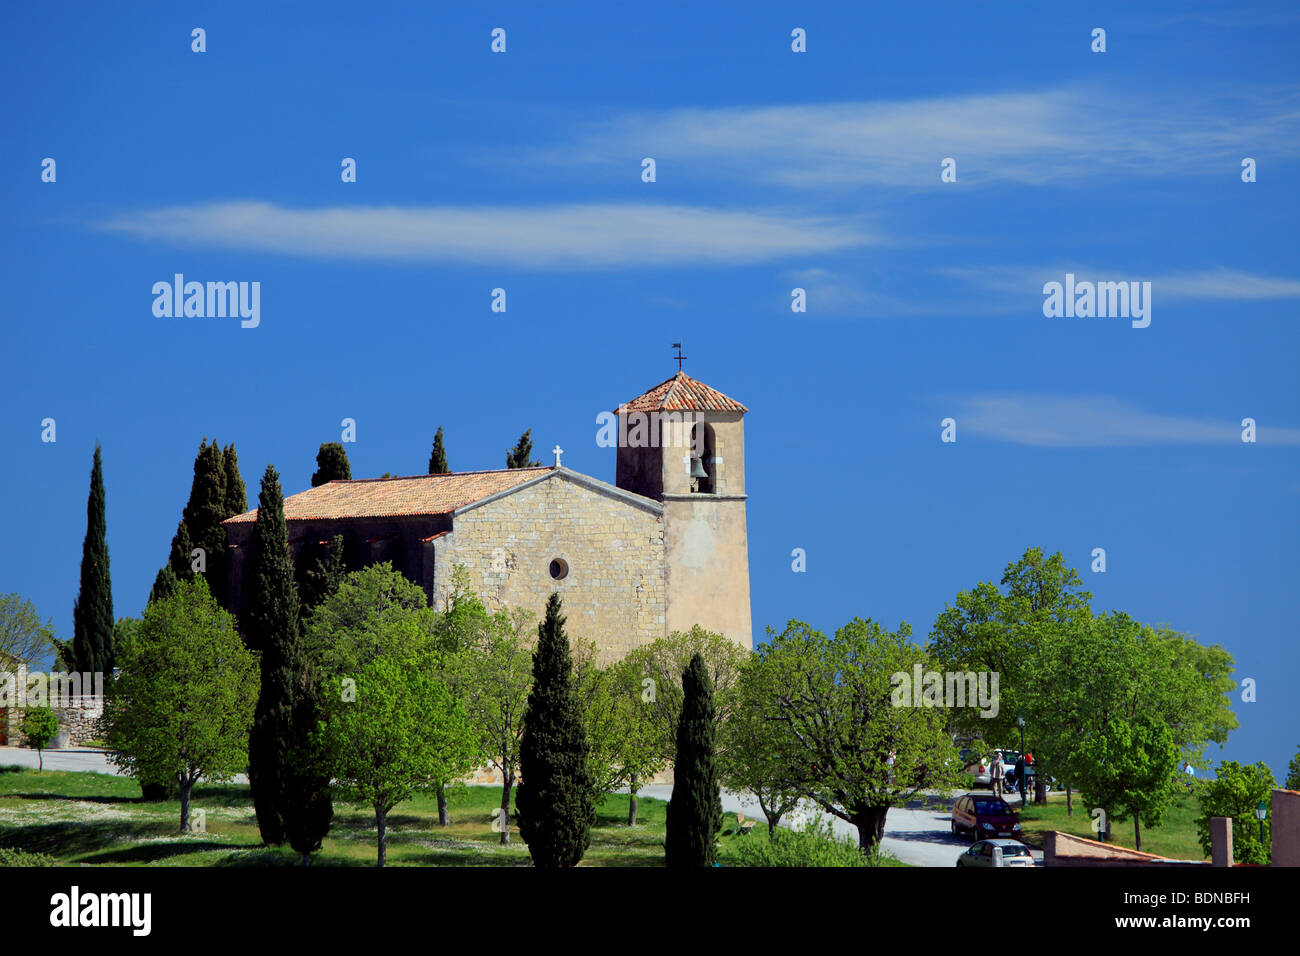 The picturesque provence village of Tourtour and the Saint Denis church - Stock Image